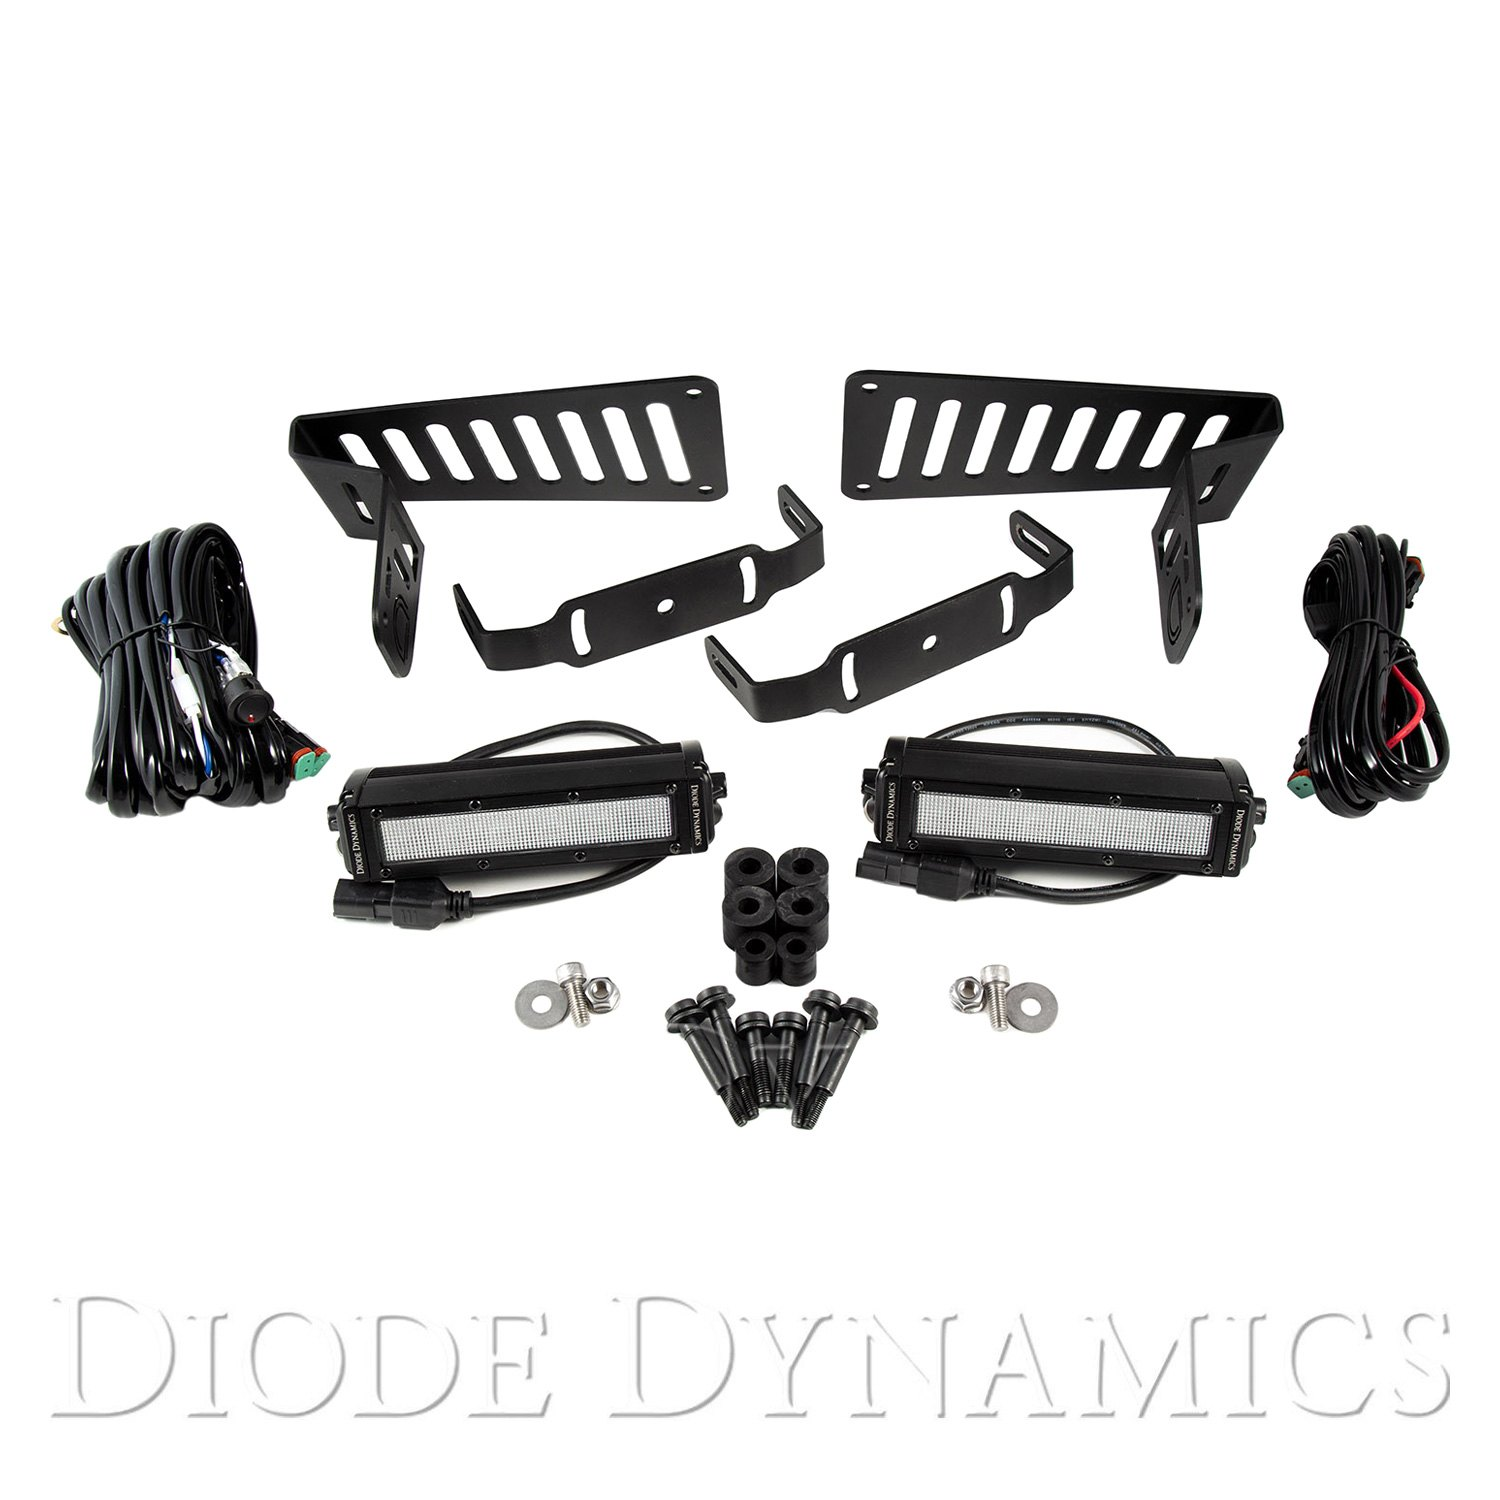 For Jeep Gladiator 20 Diode Dynamics Stage Series Cowl